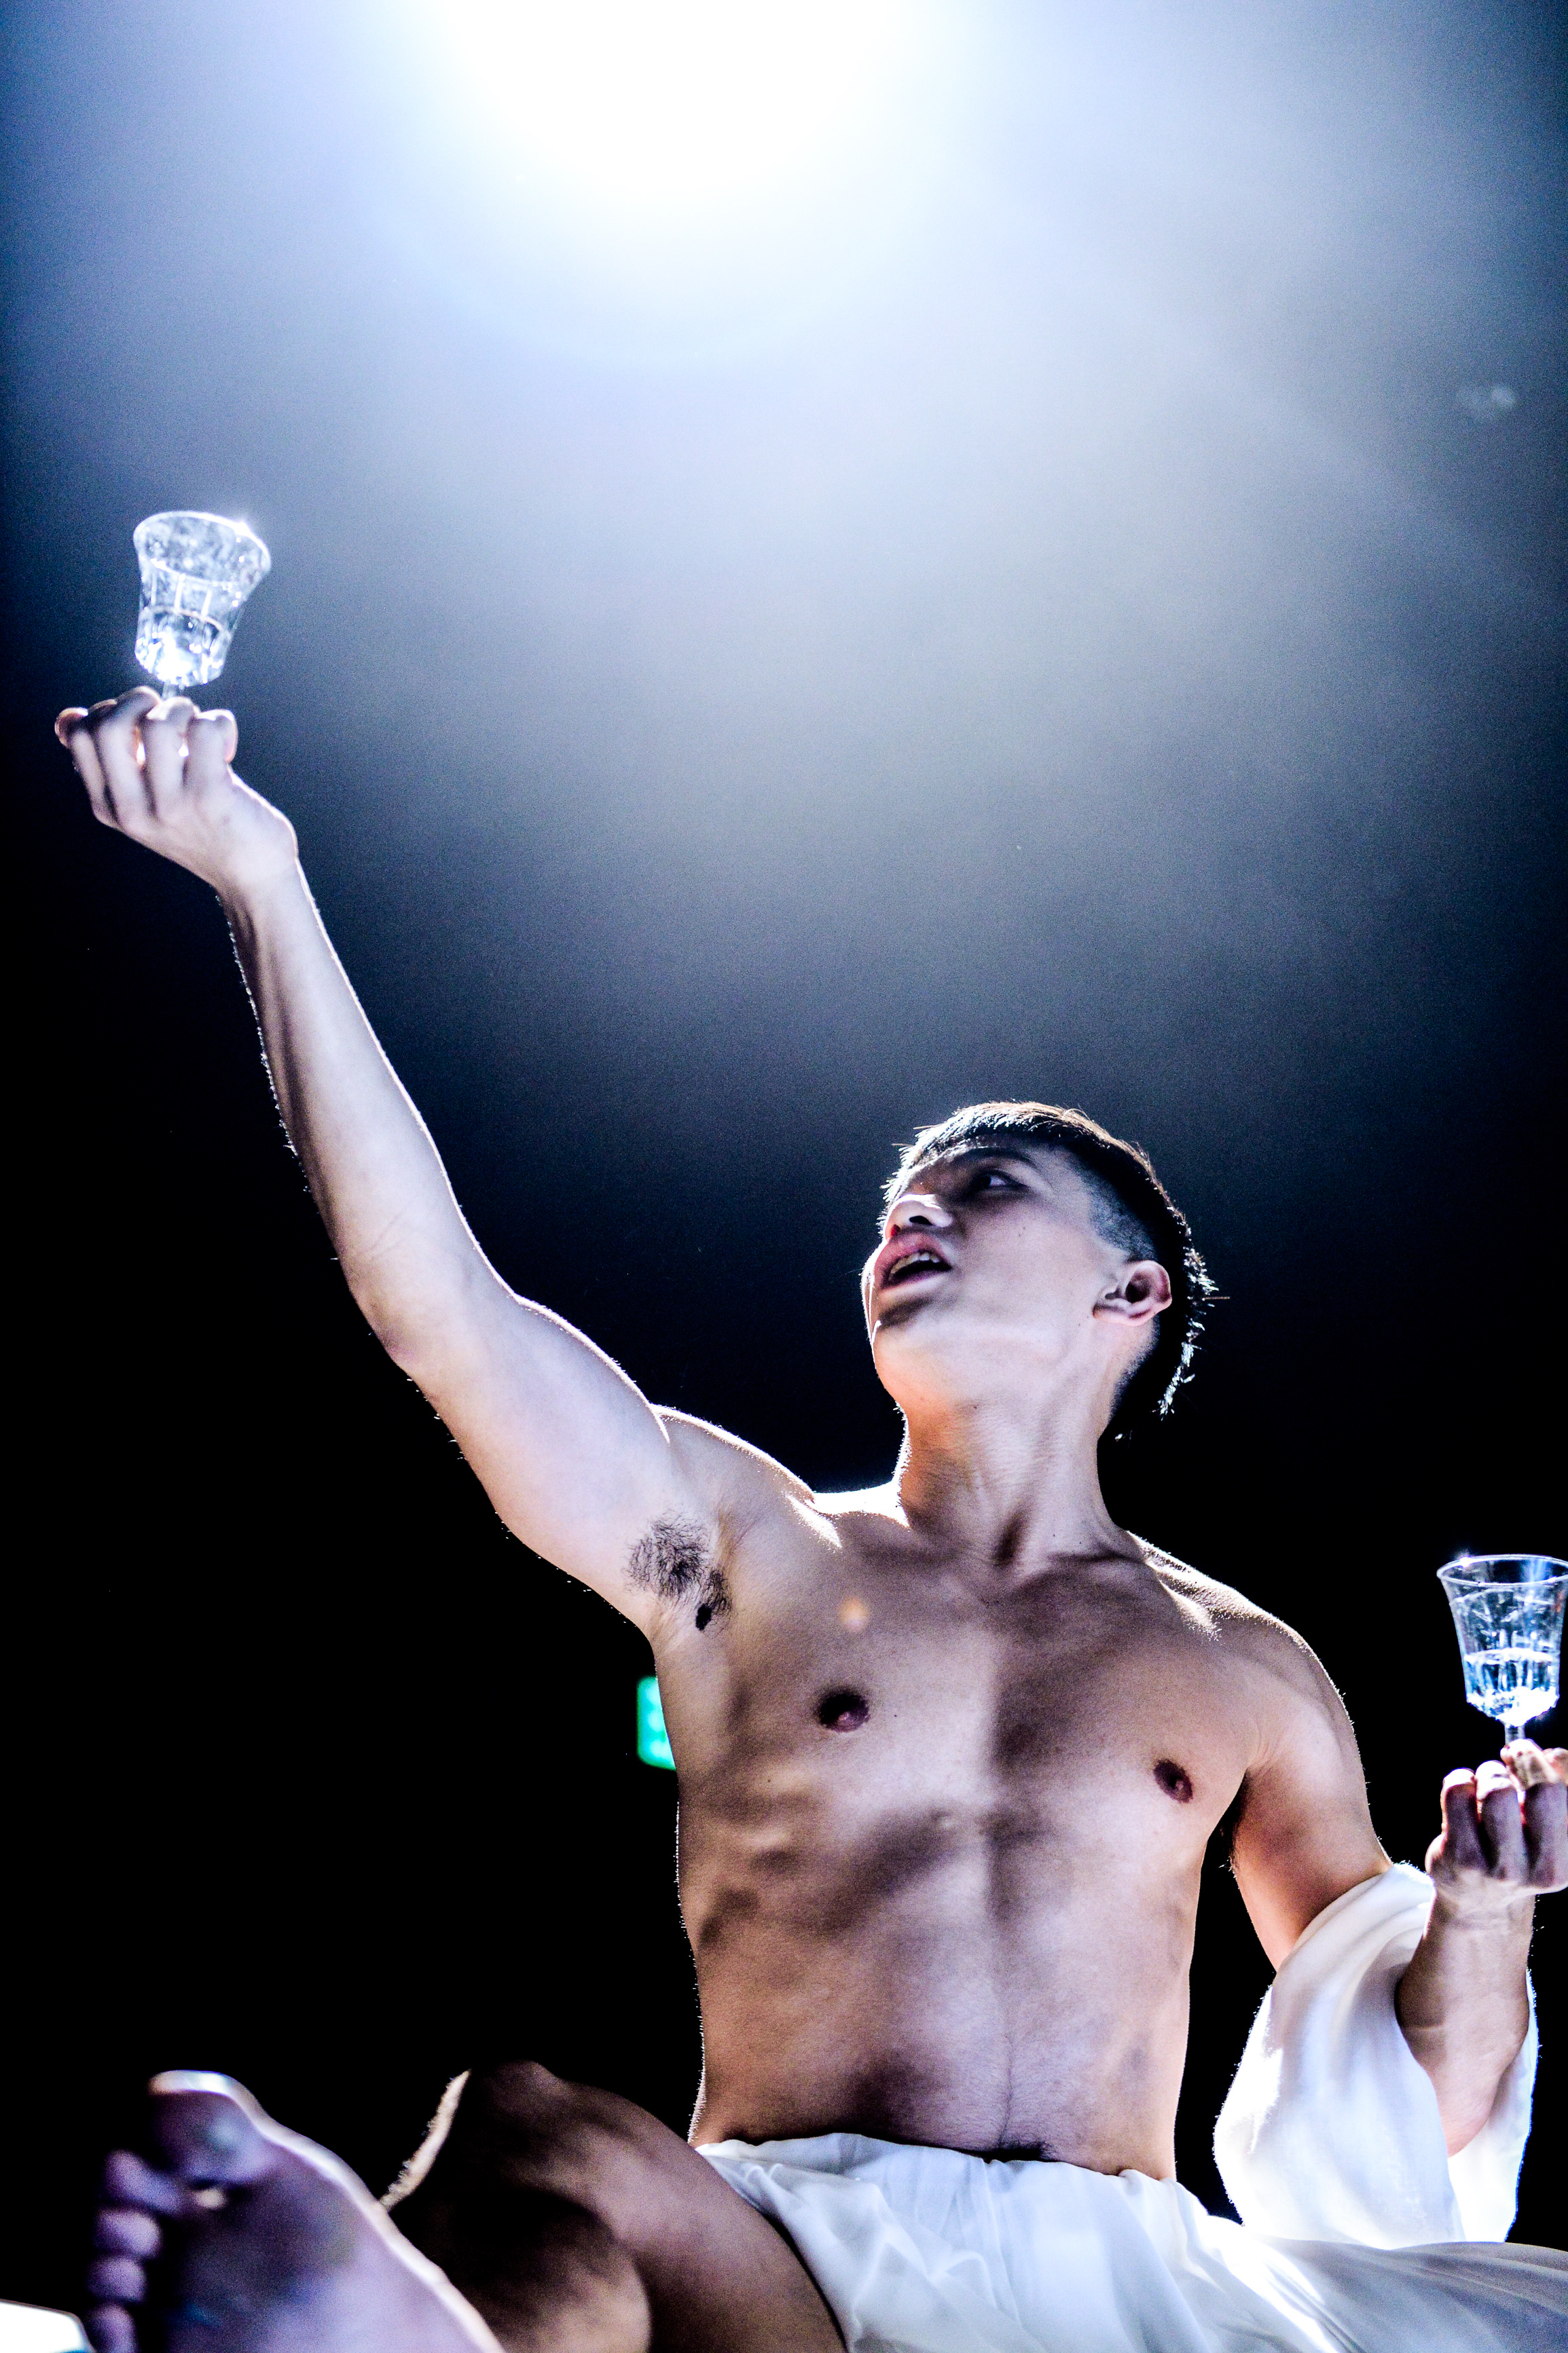 I was tried for blasphemy and sentenced to die | Featuring: Yau Fuk Wing | Tagged as: Show, The Furies Variations | Photo: Fung Wai Sun |  (Rooftop Productions • Hong Kong Theatre Company)